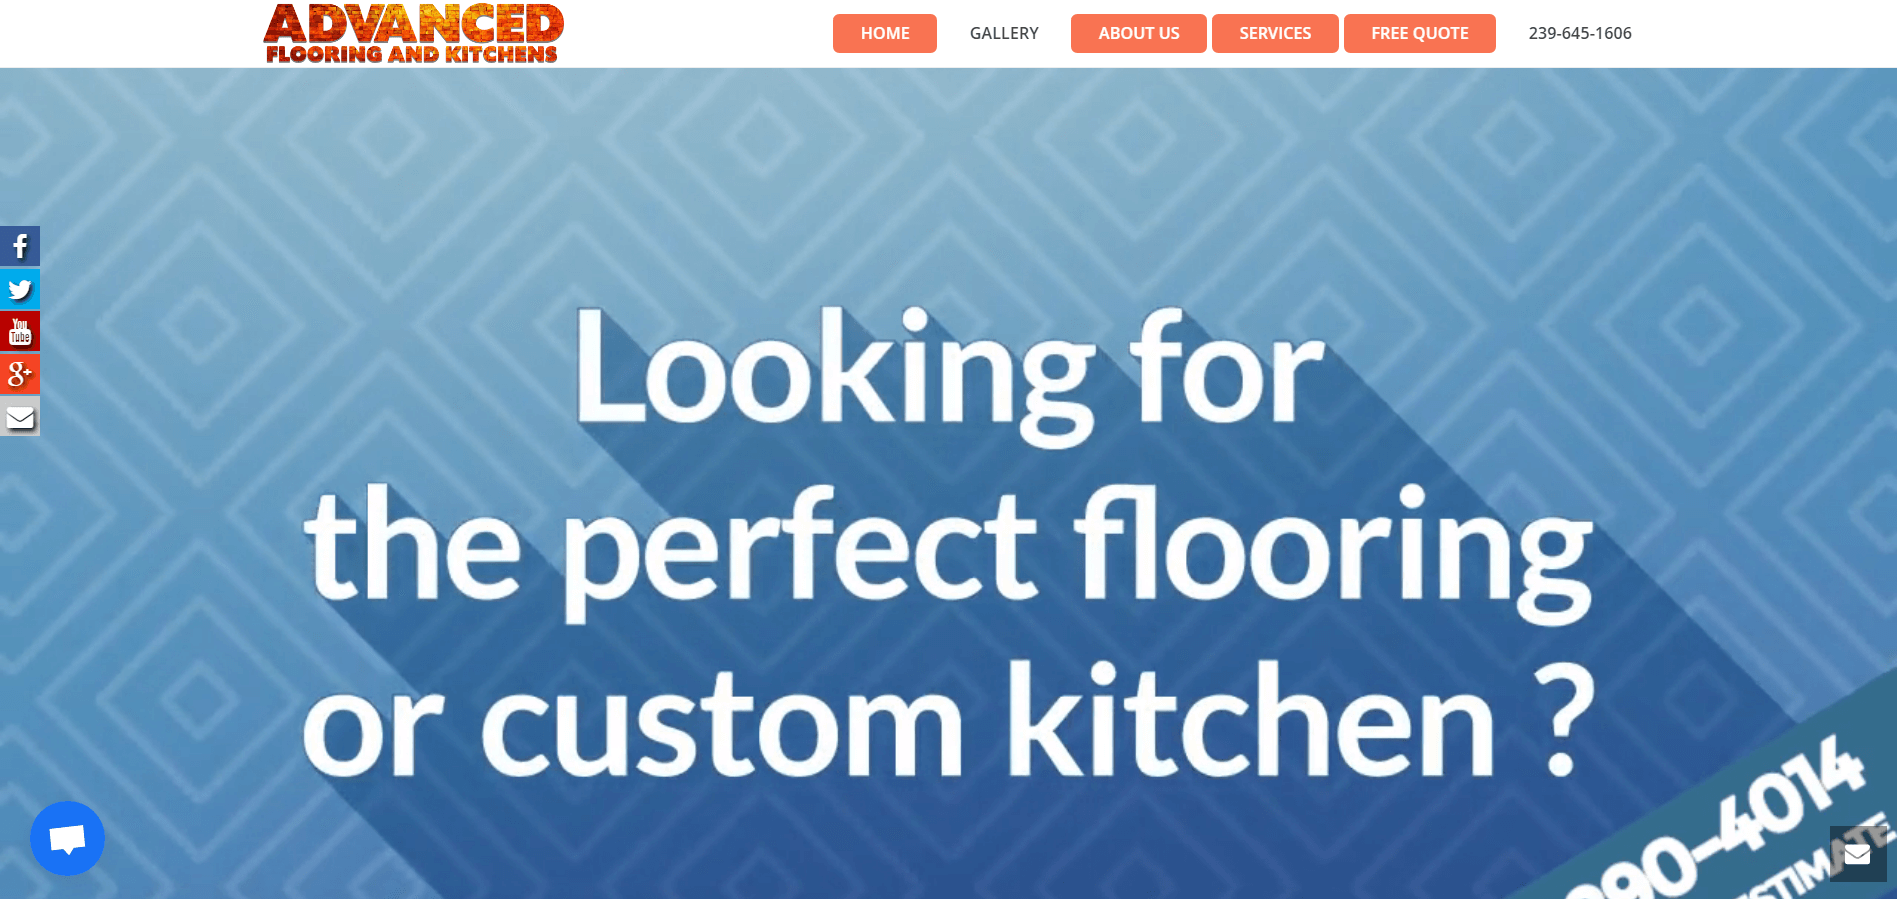 advanced flooring and kitchens splash page